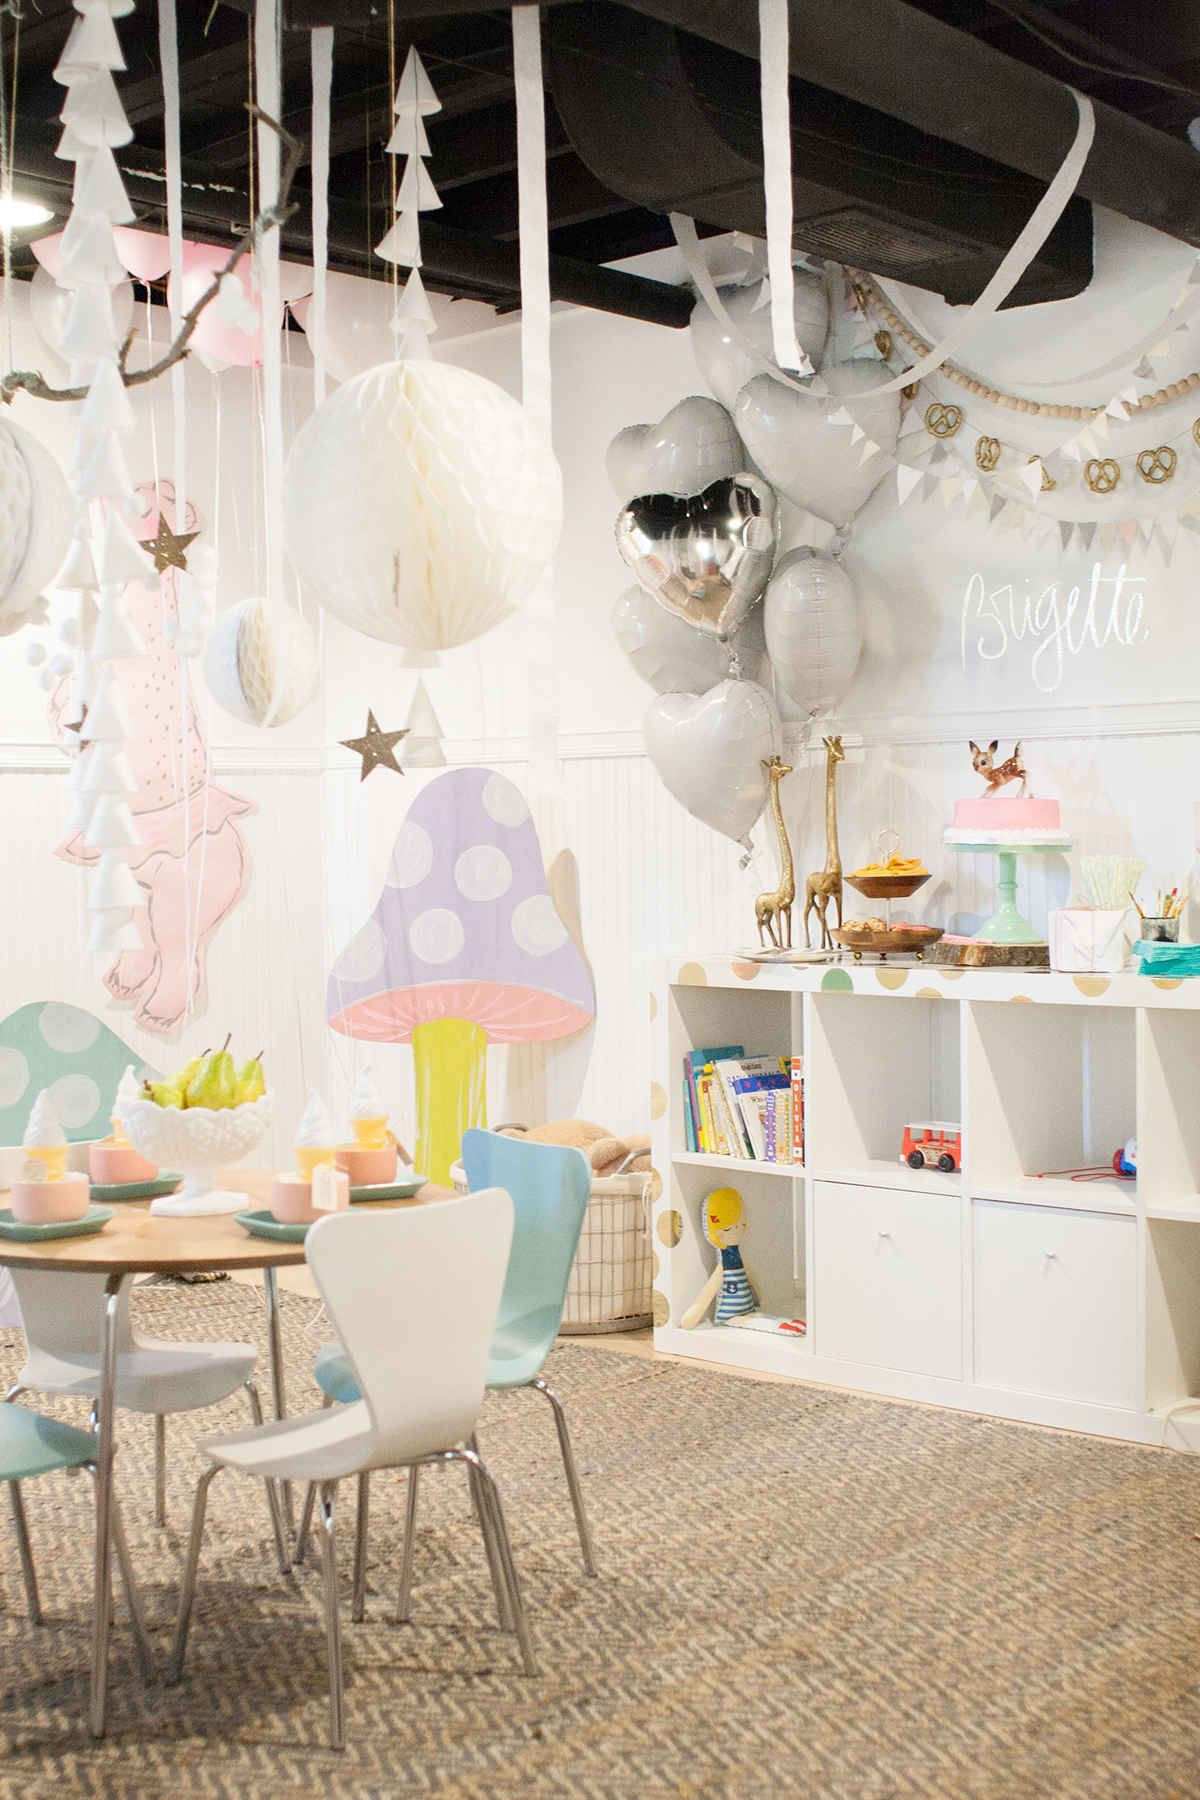 second birthday party | Birthday party ideas, Birthdays and Bday ...